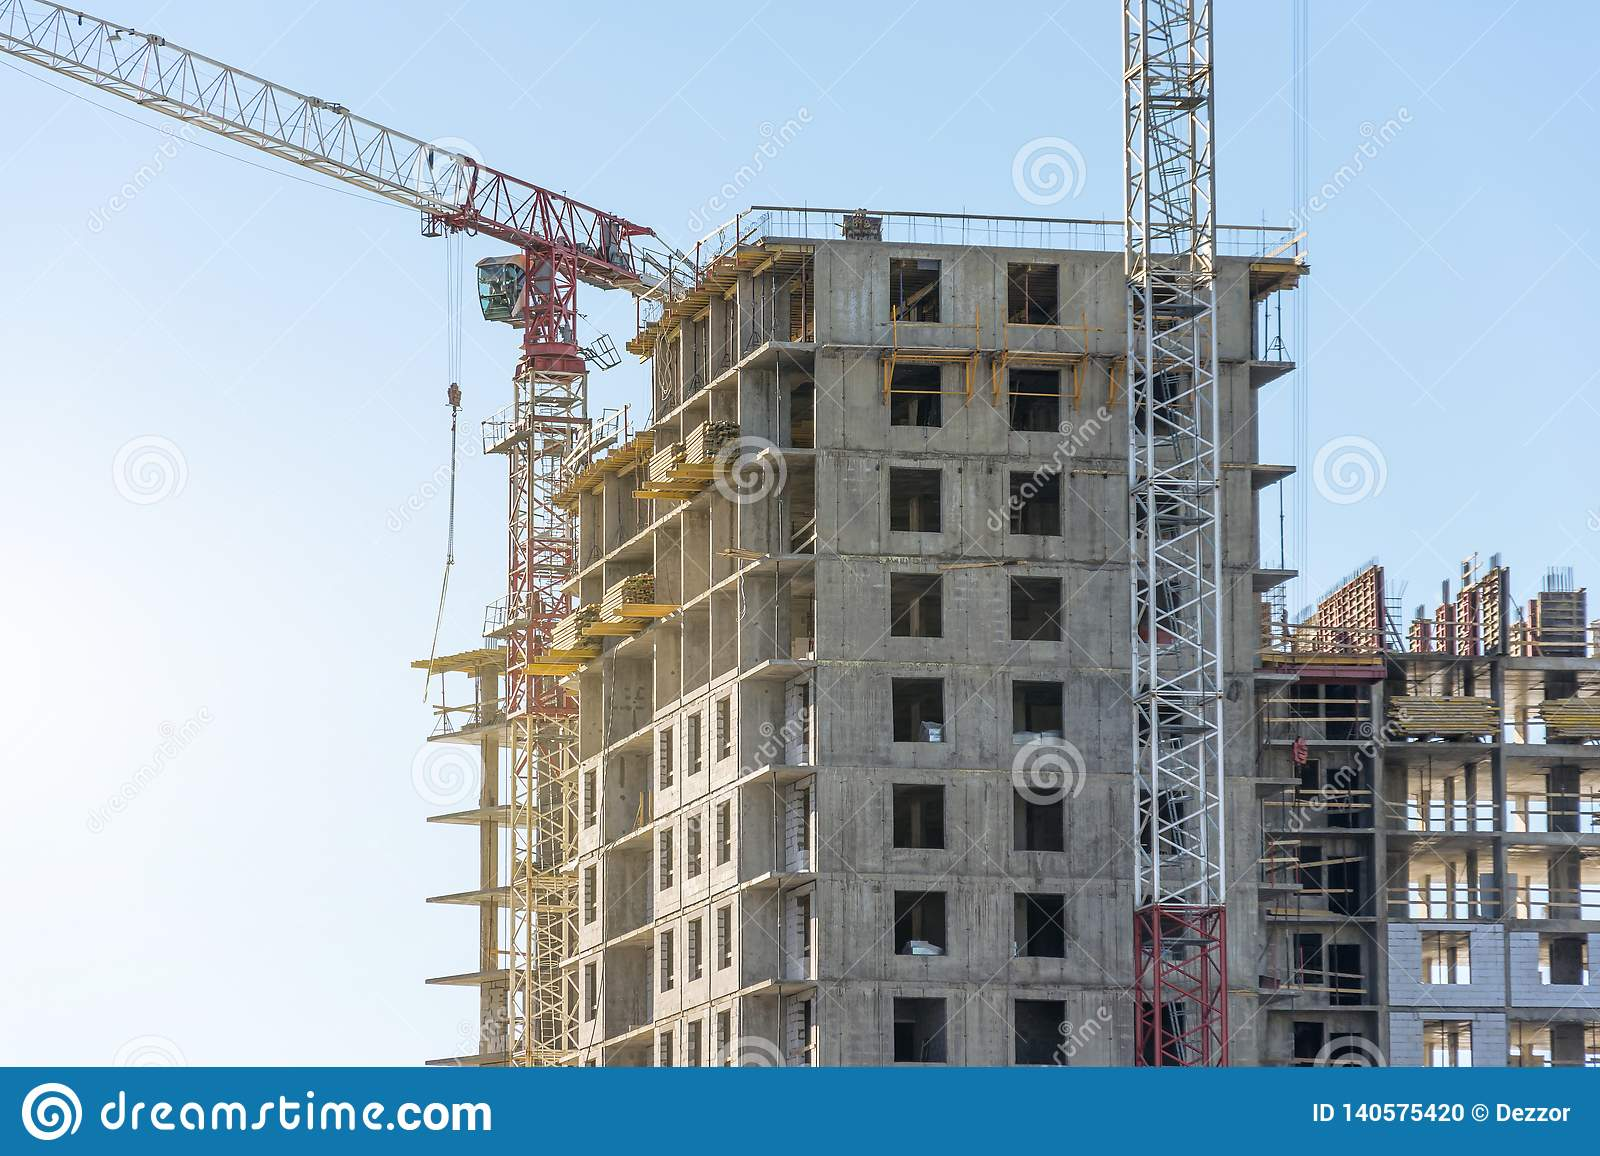 Crane and high-rise residential building. Real Estate Construction